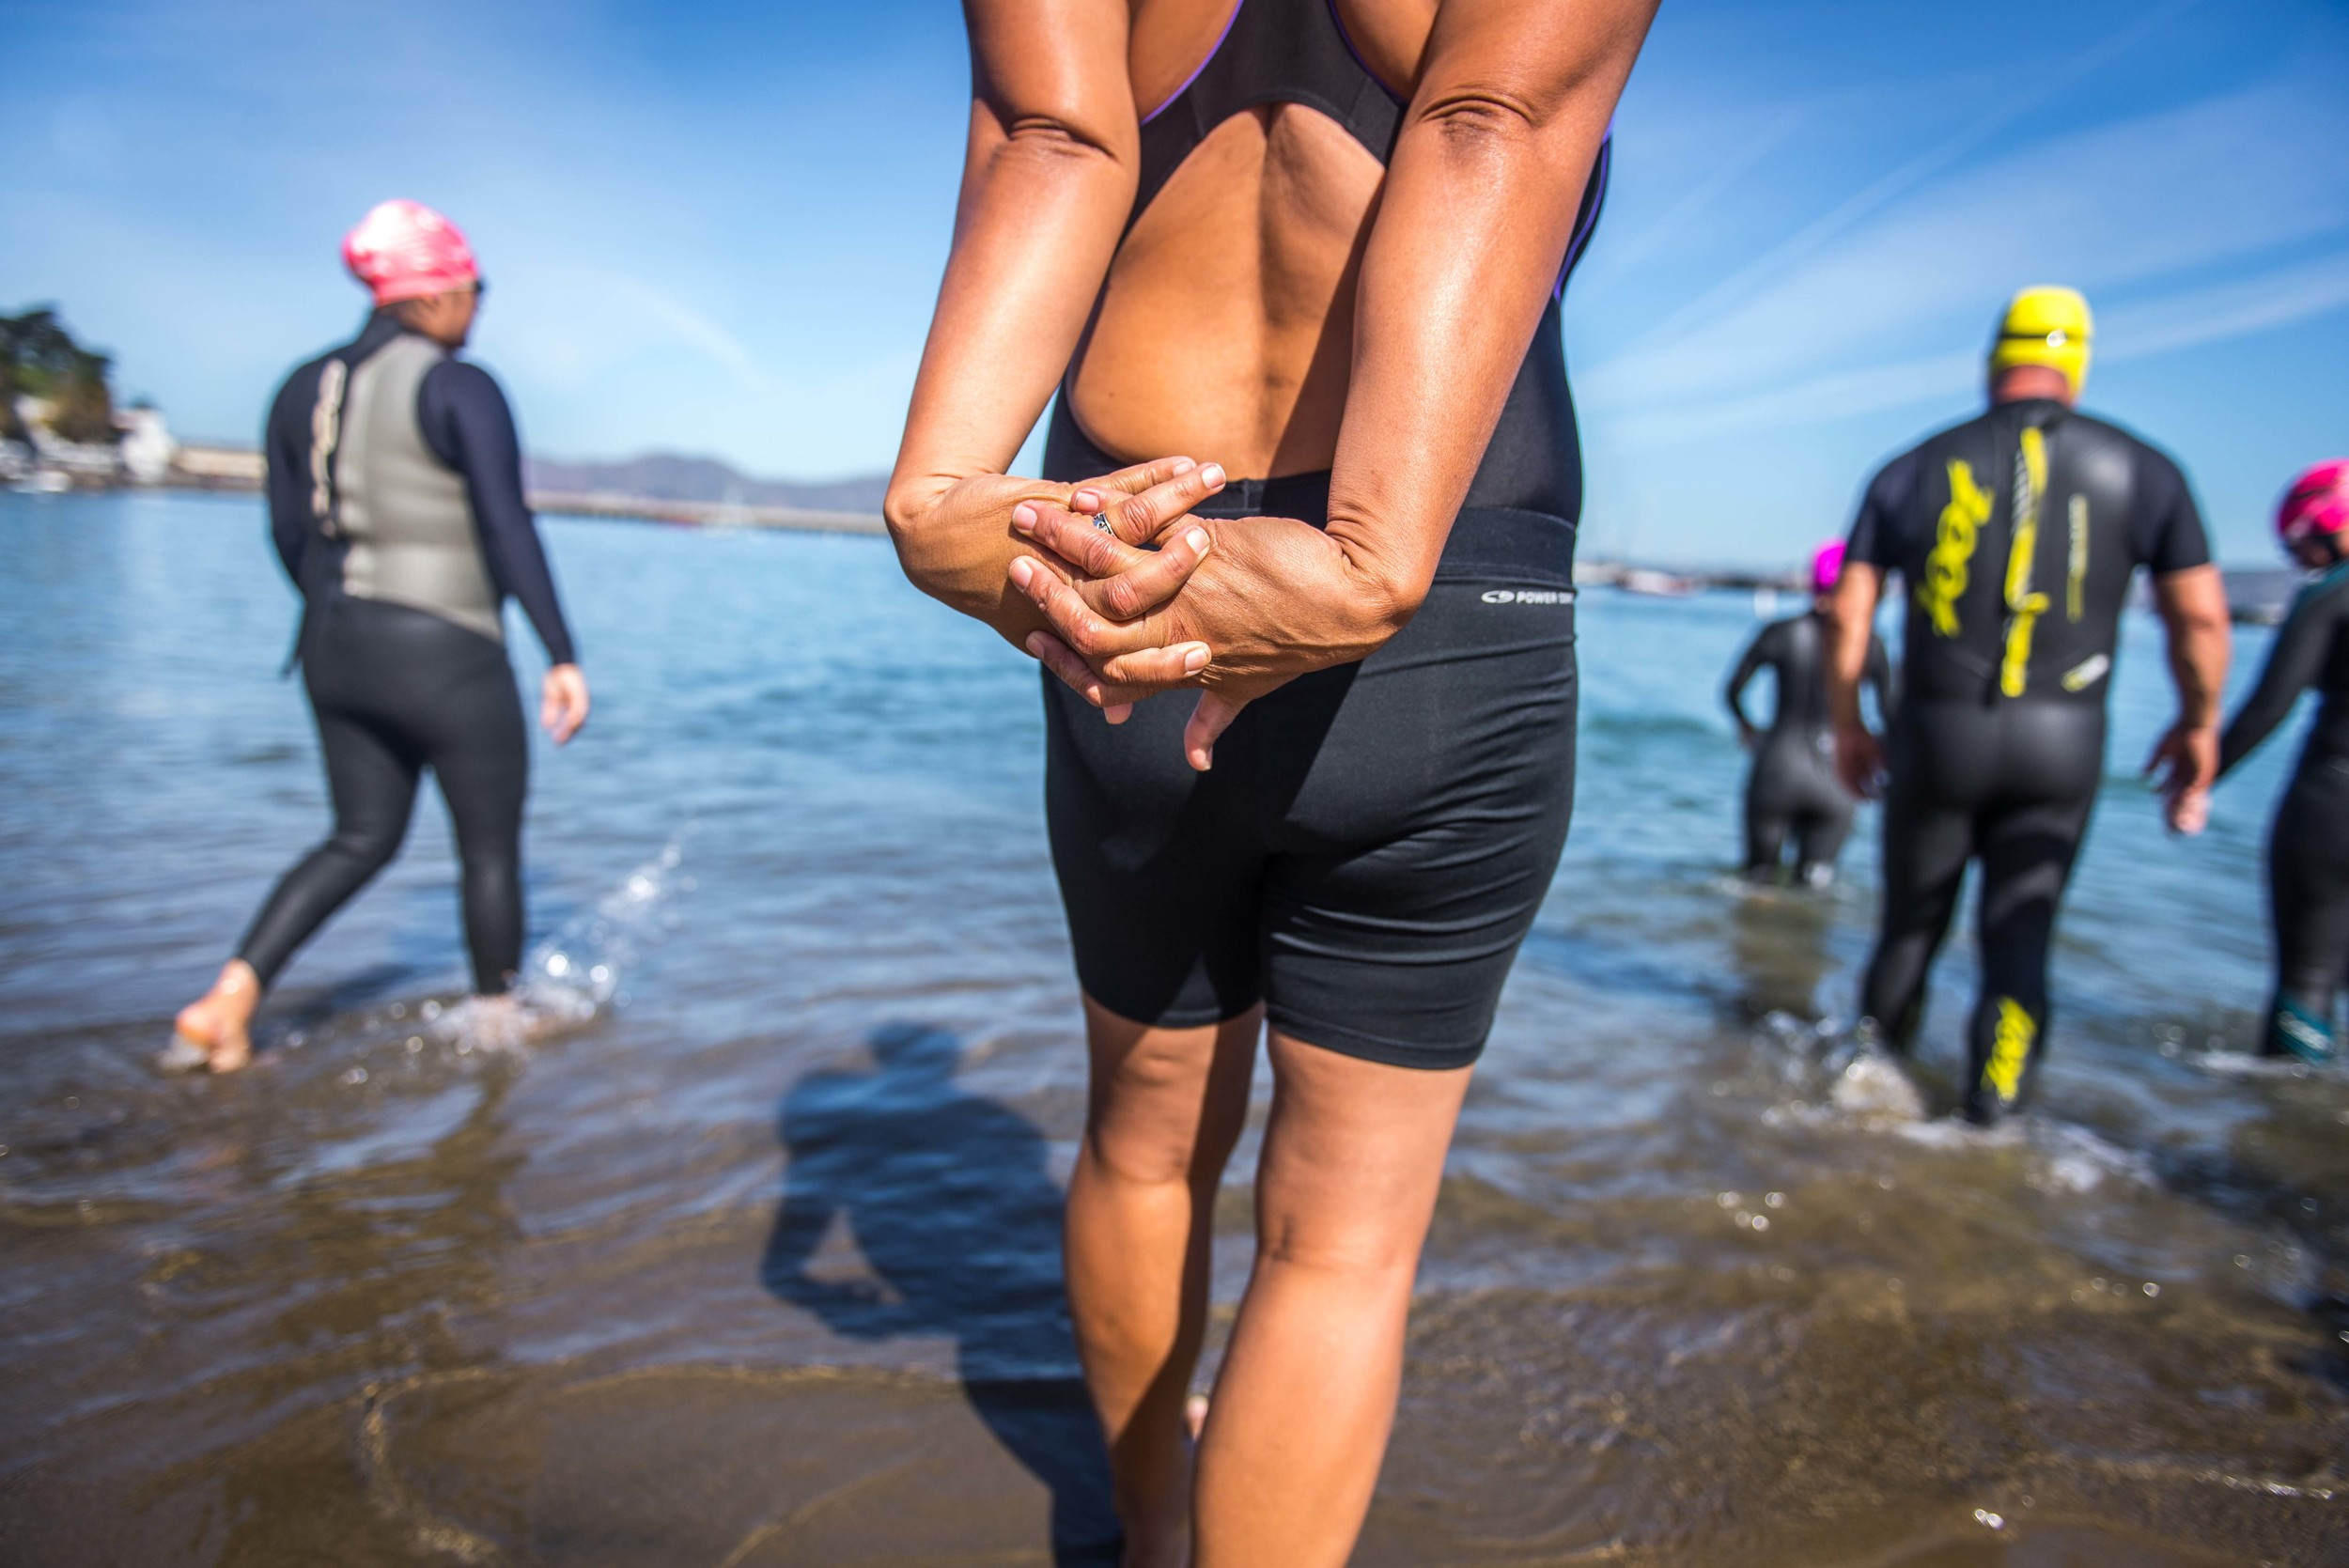 A group of veterans braves the waters of the San Francisco Bay for challenge, camaraderie and support.And to swim the two miles from Alcatraz Island to San Francisco.